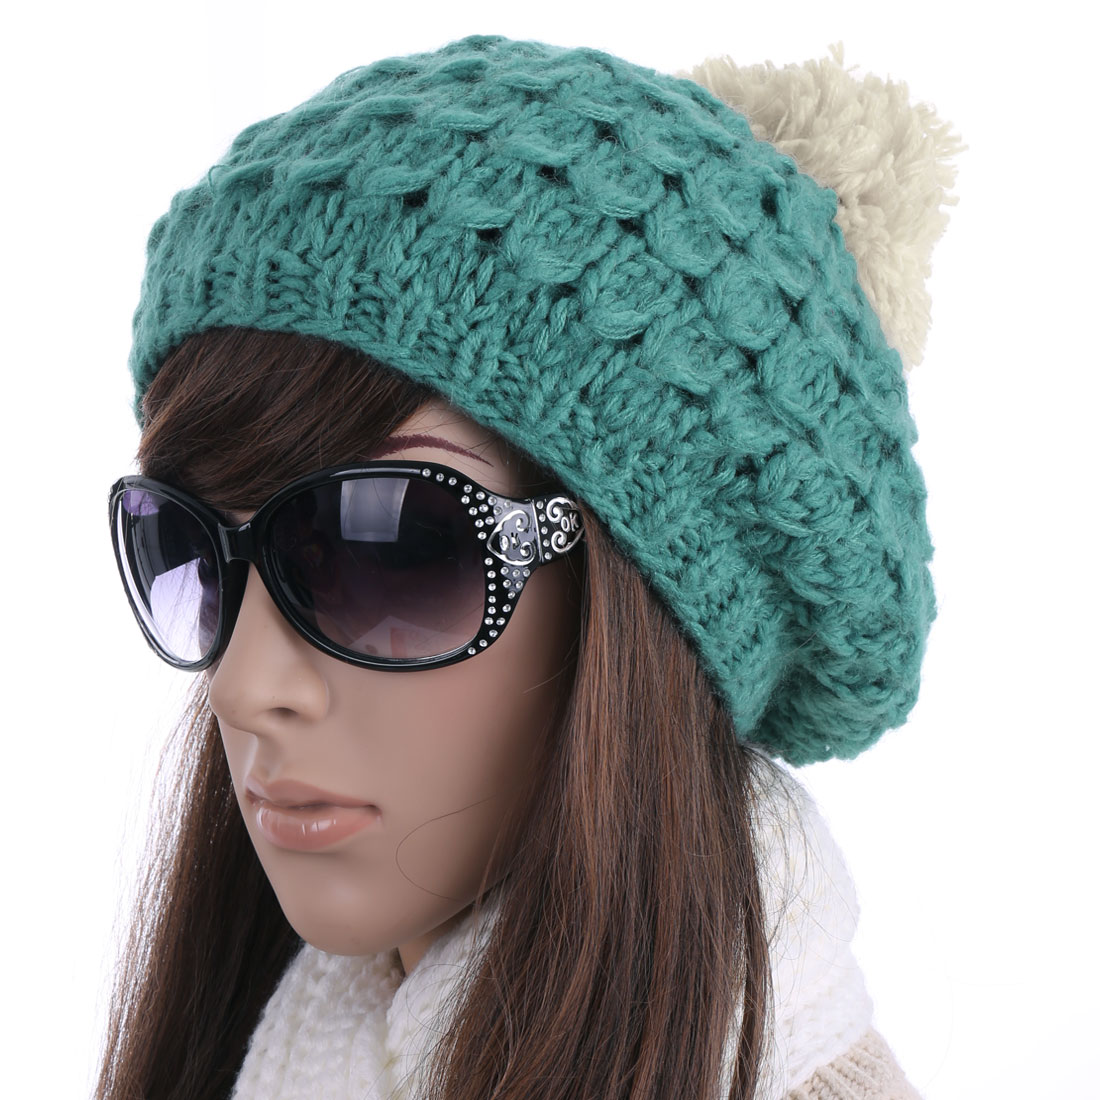 Woman Chic Blue Yellow Textured Design Winter Knitted Cap Hat